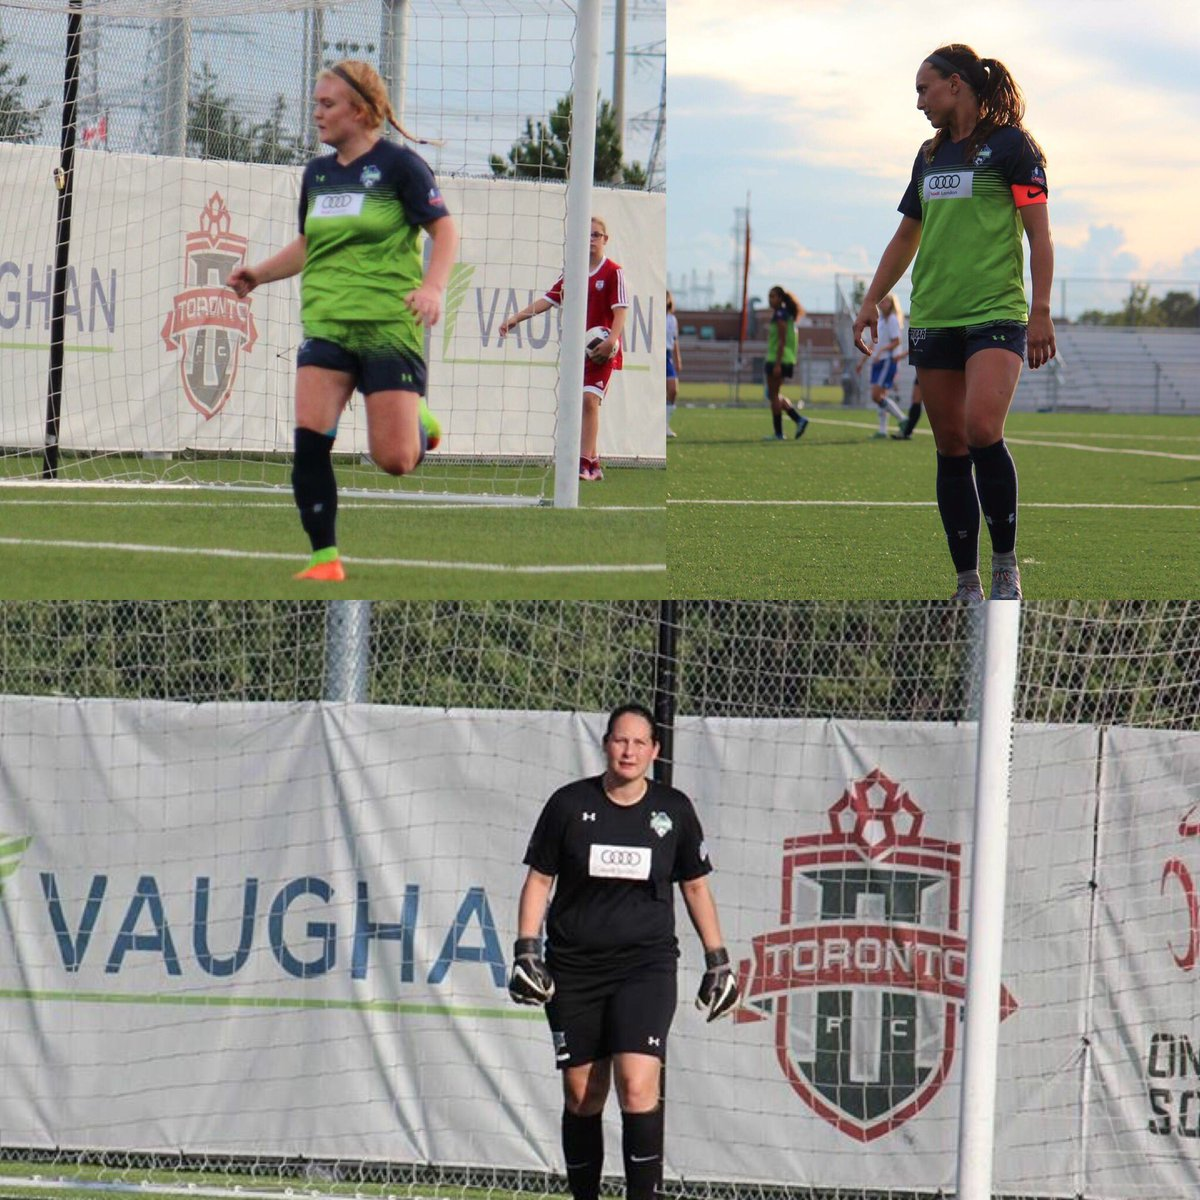 *FINAL* Score:  @WOSsoccer v @FCLondon  0-3 (Nielsen 24&#39;, Kovacevic 37&#39;, 90+&#39;) SO Emily Gillet! Excellent performance by #FCL #WOSvFCL #L1OW<br>http://pic.twitter.com/iNG9VLG34S